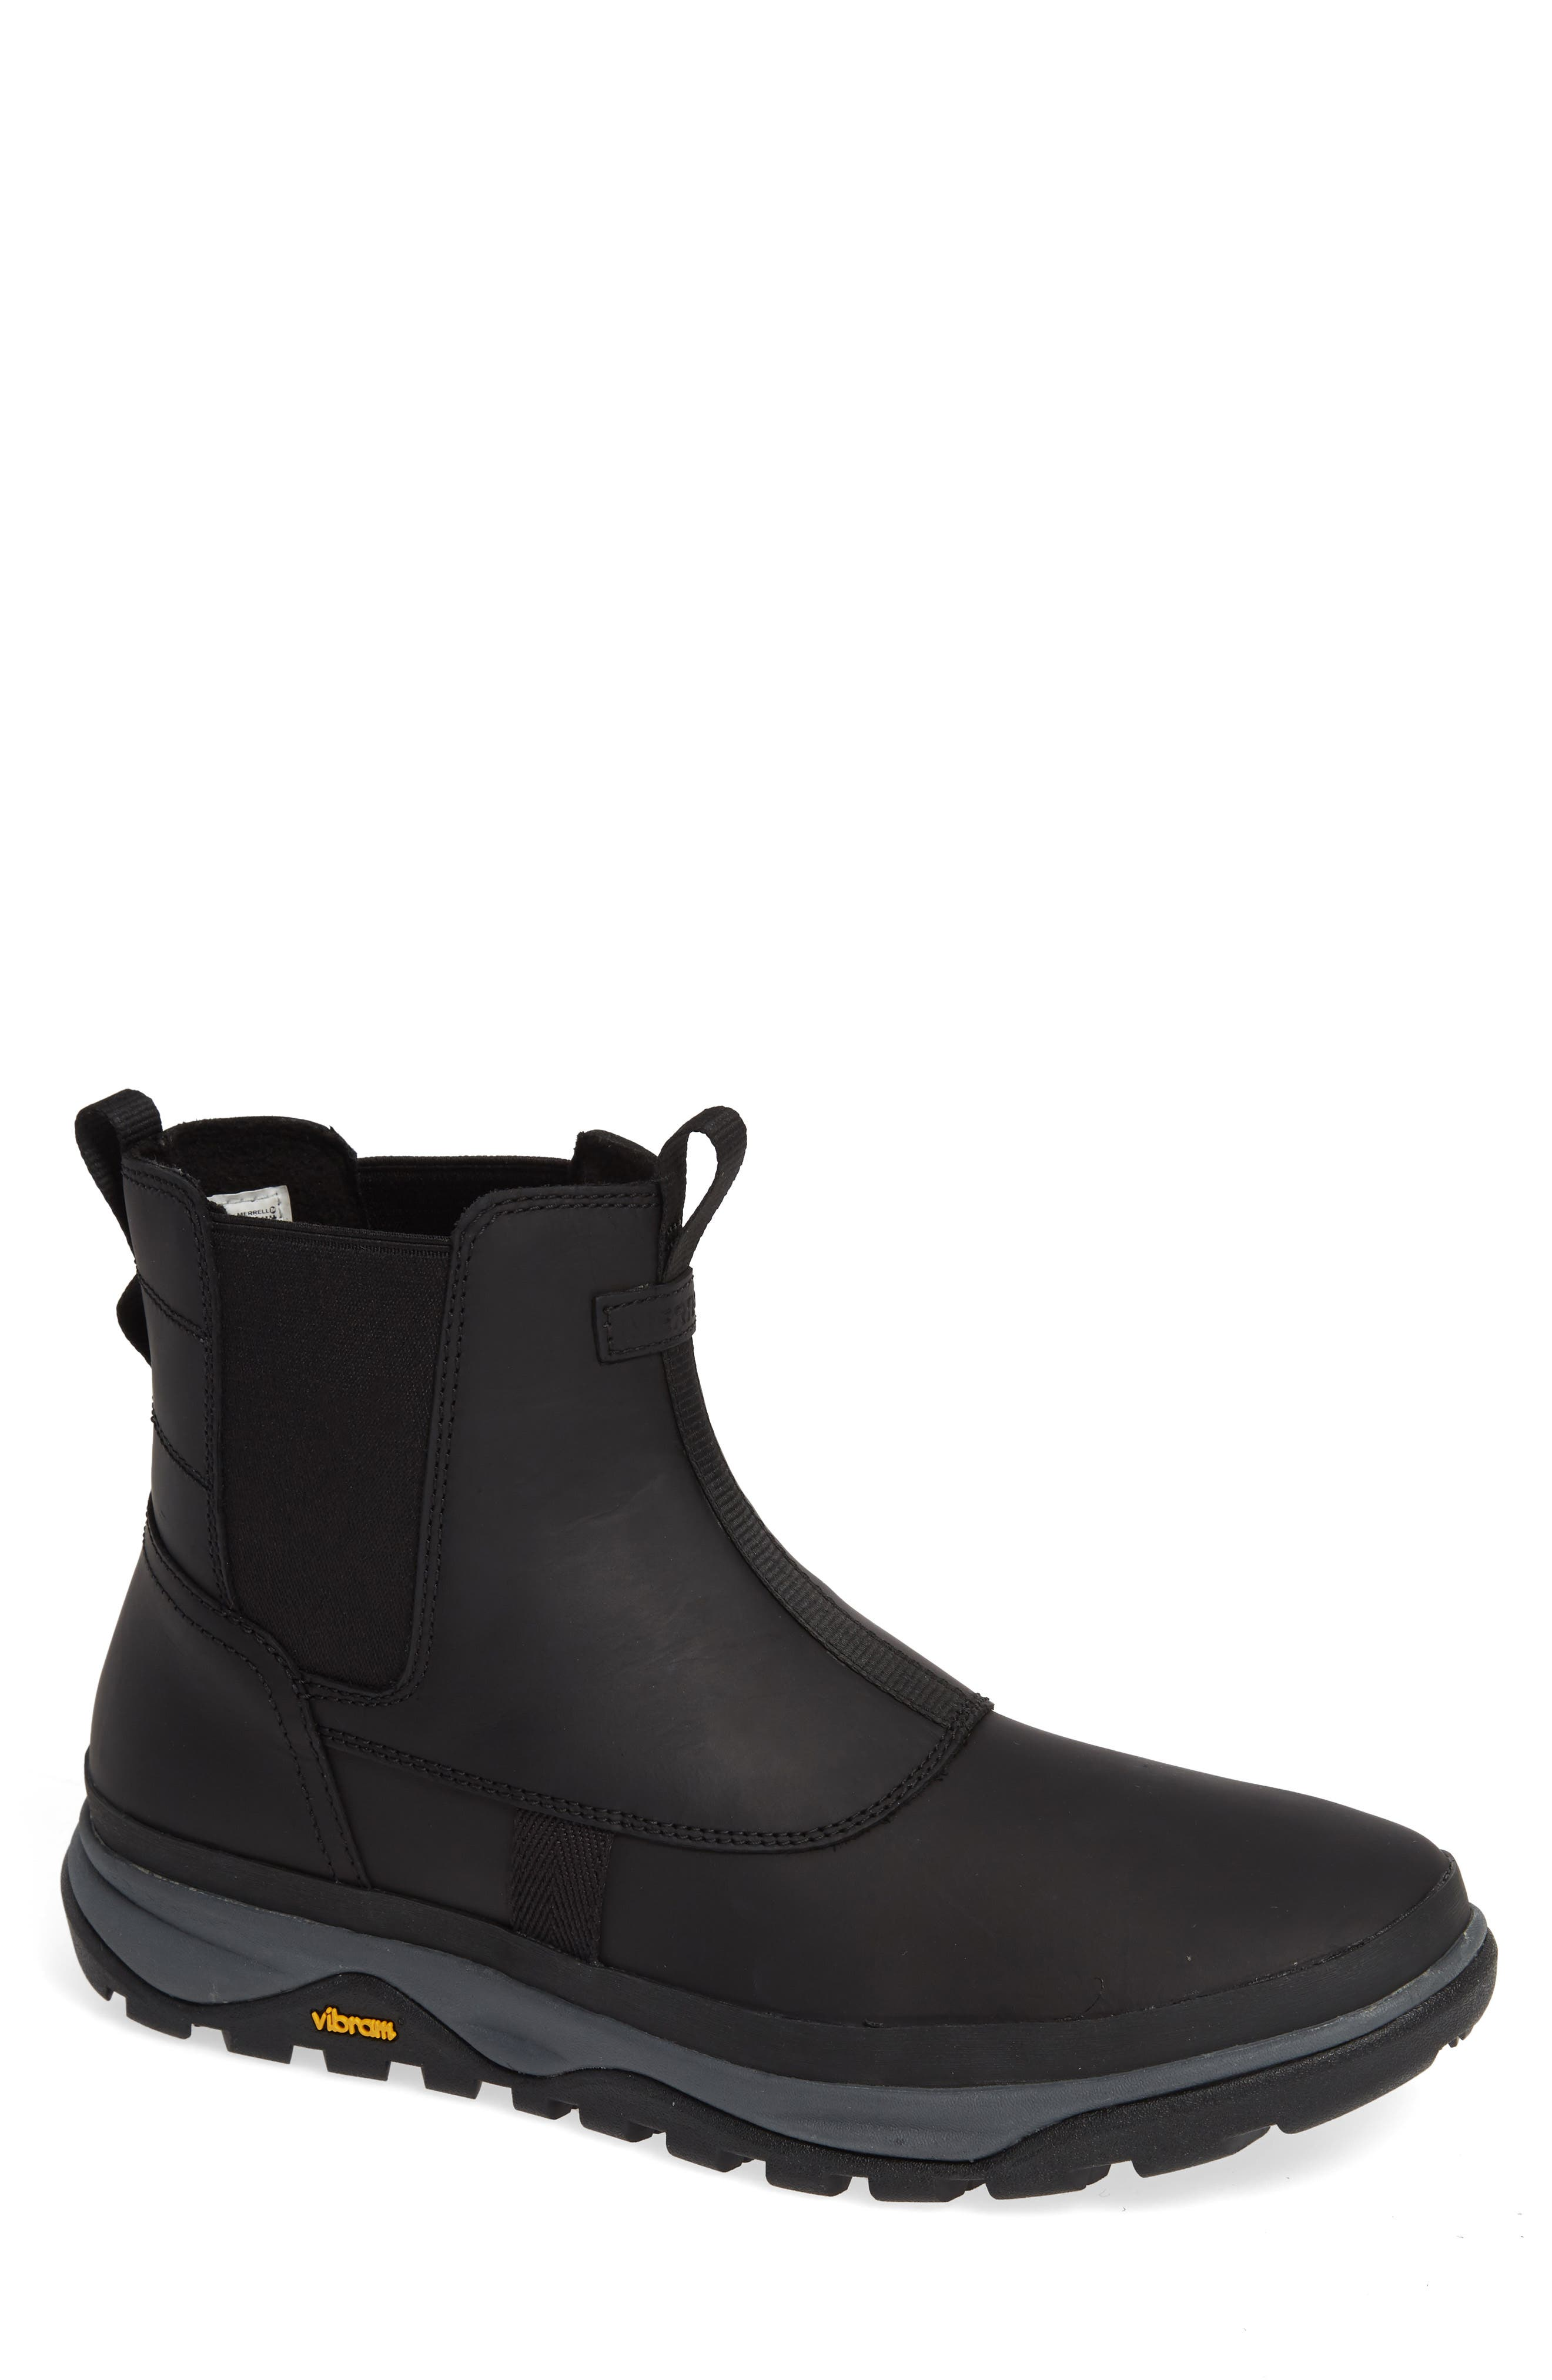 Tremblant Waterproof Snow Boot,                         Main,                         color, BLACK